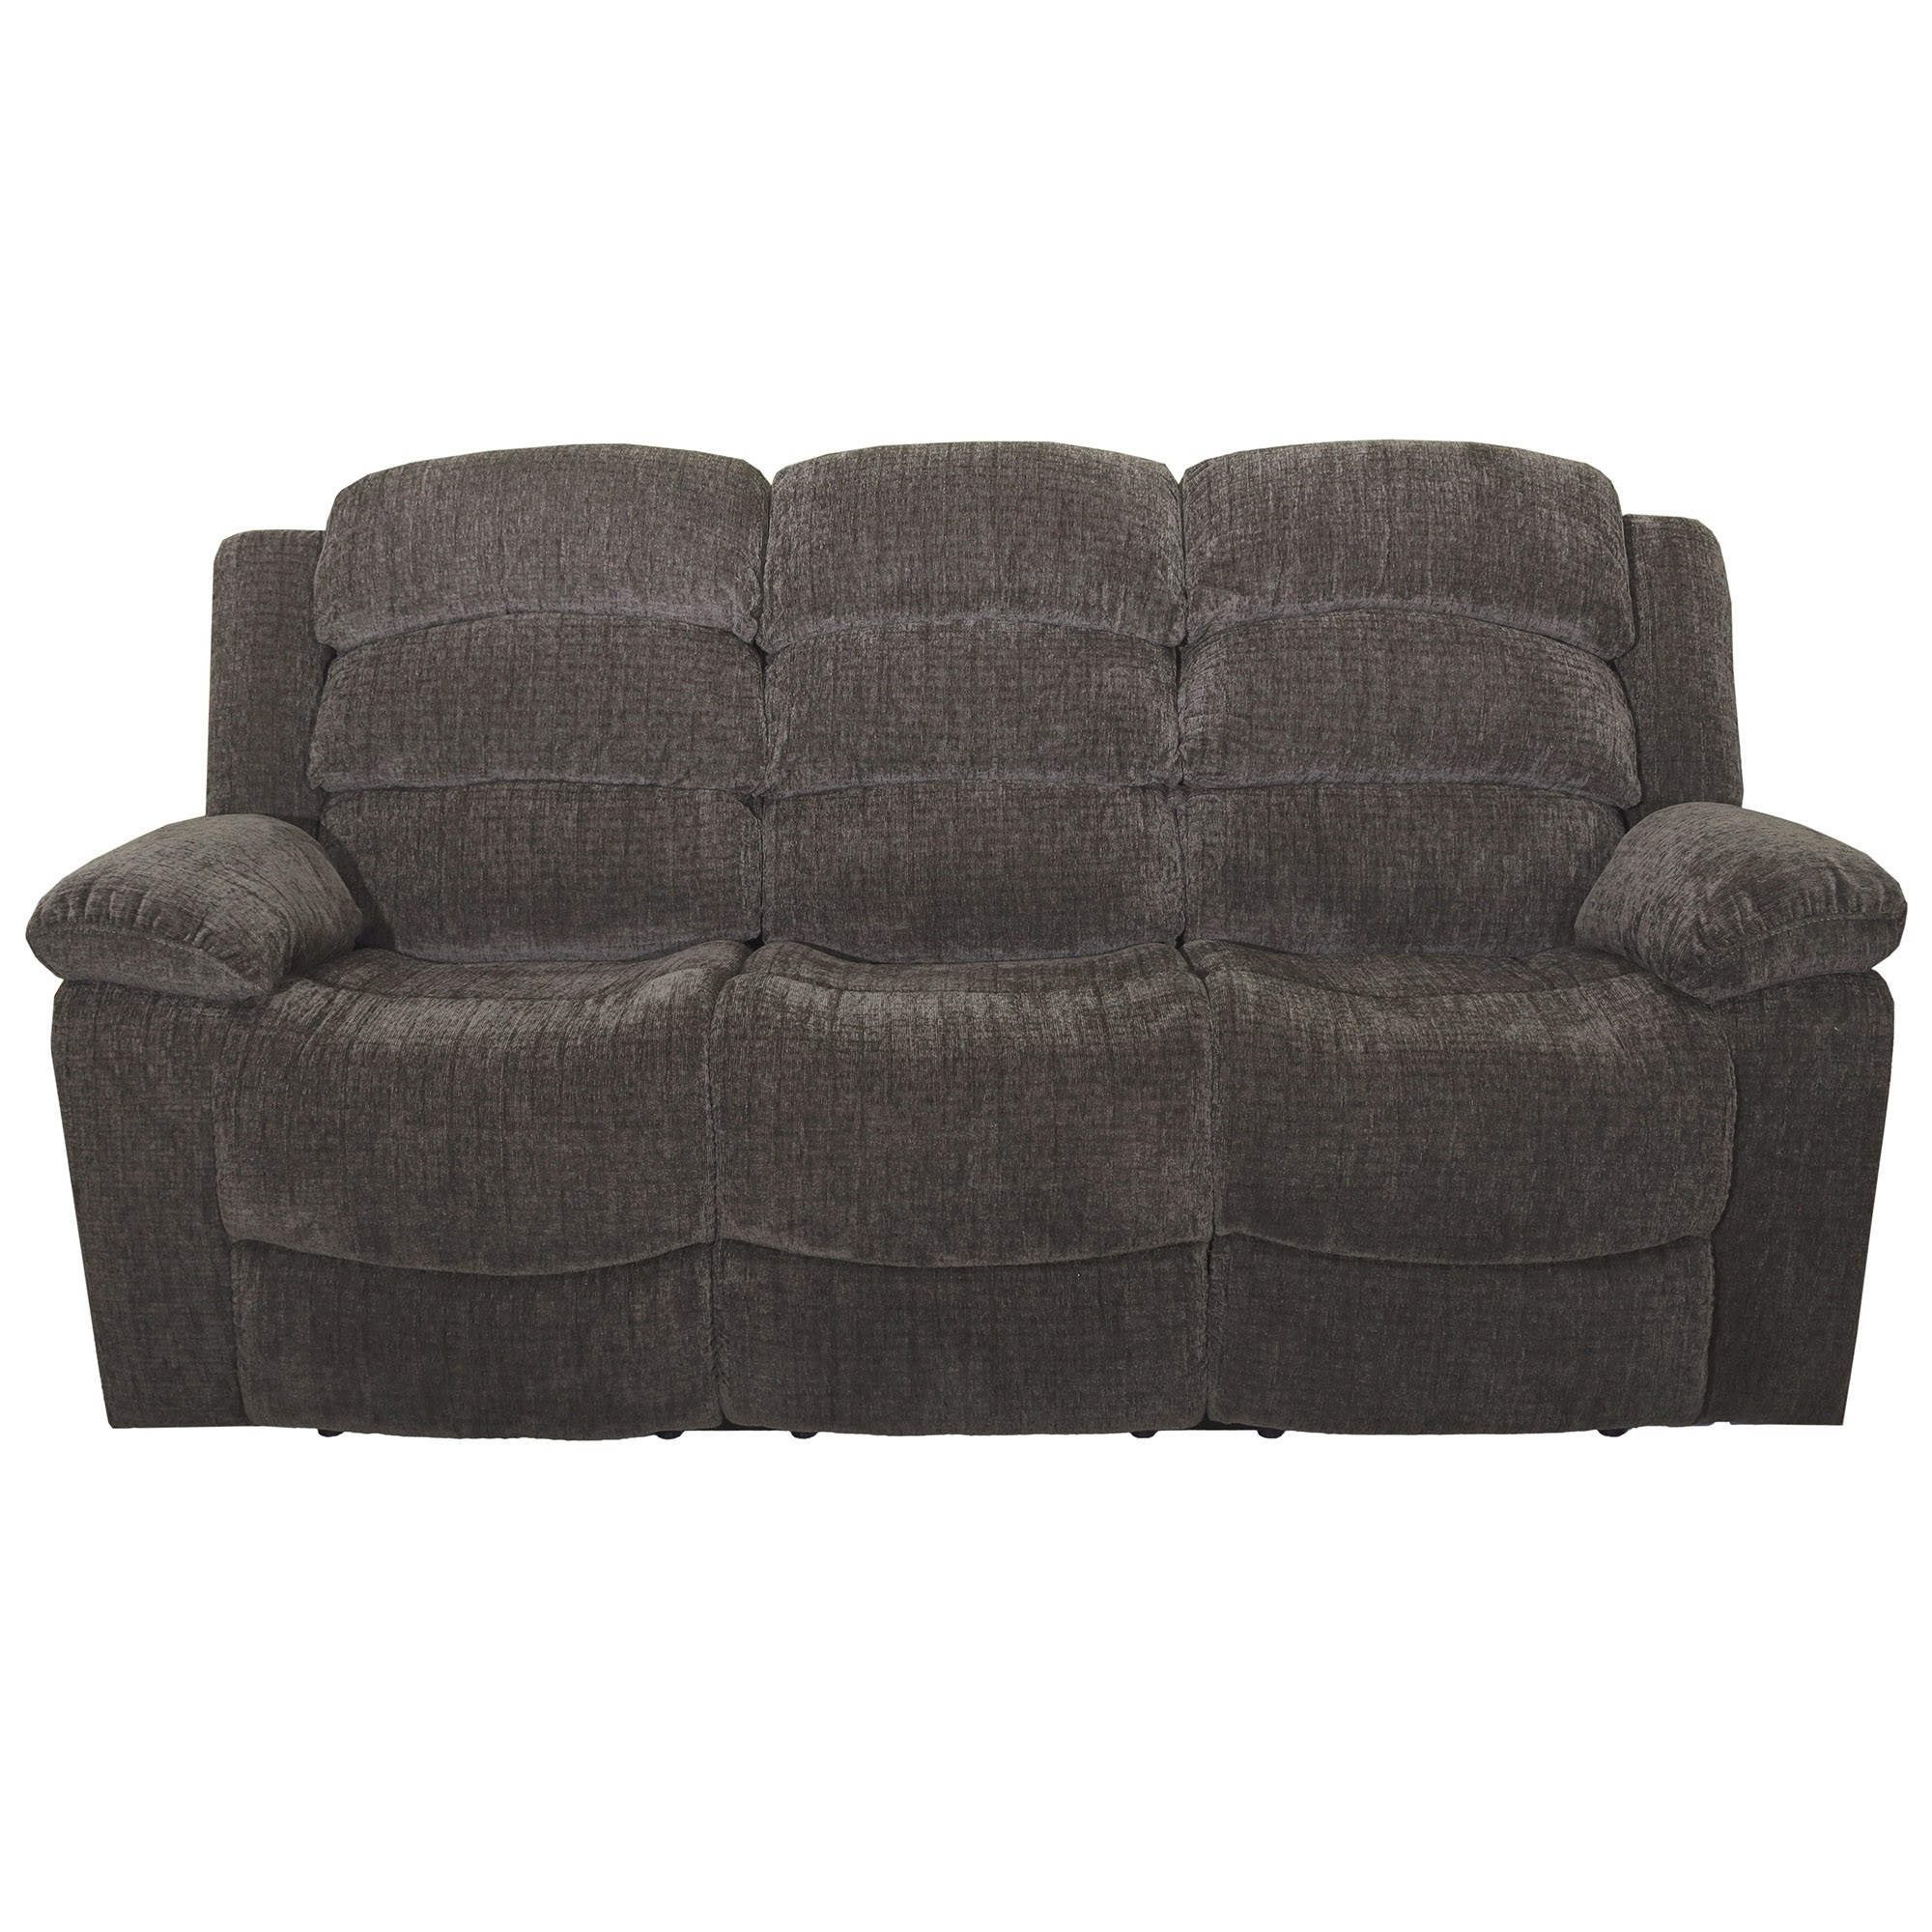 Famous Austin Stone Dual Recliner Sofa For $ (View 3 of 15)